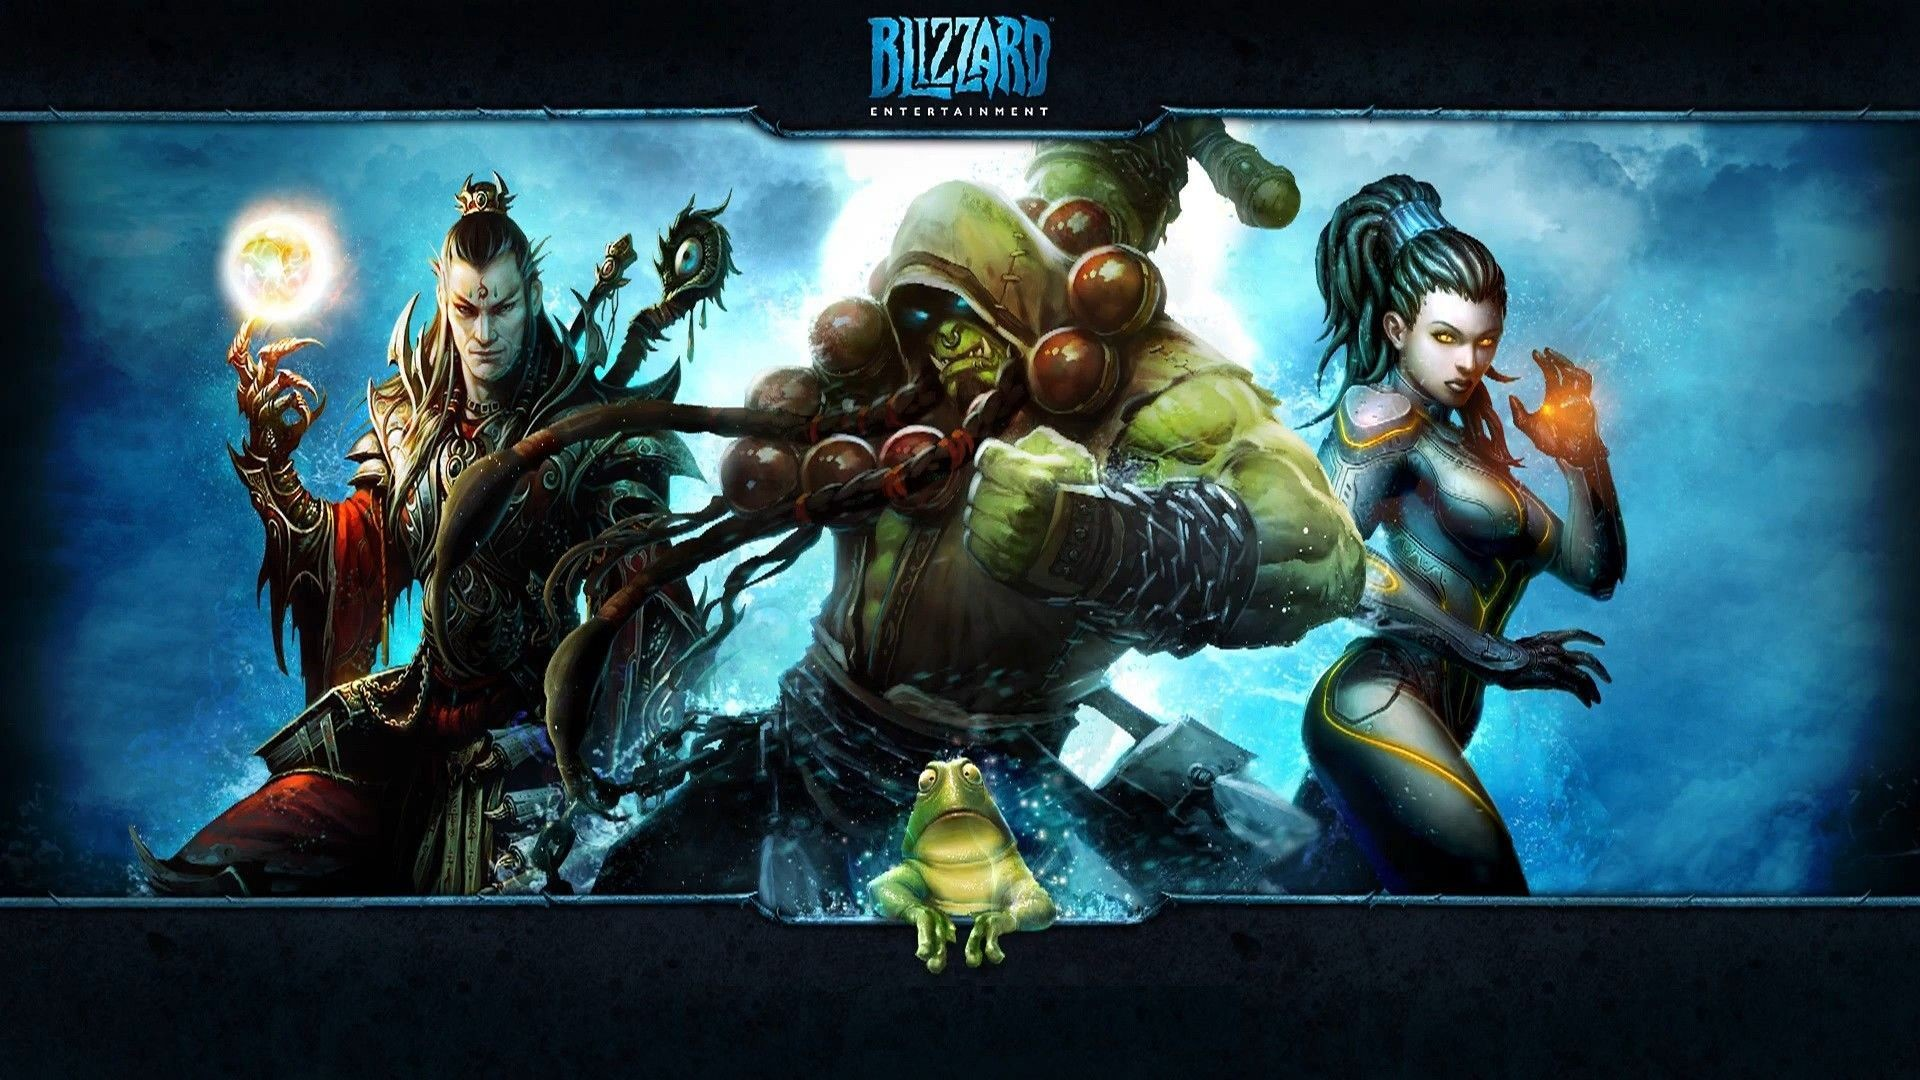 Photo Collection Blizzard Entertainment Wallpapers 2